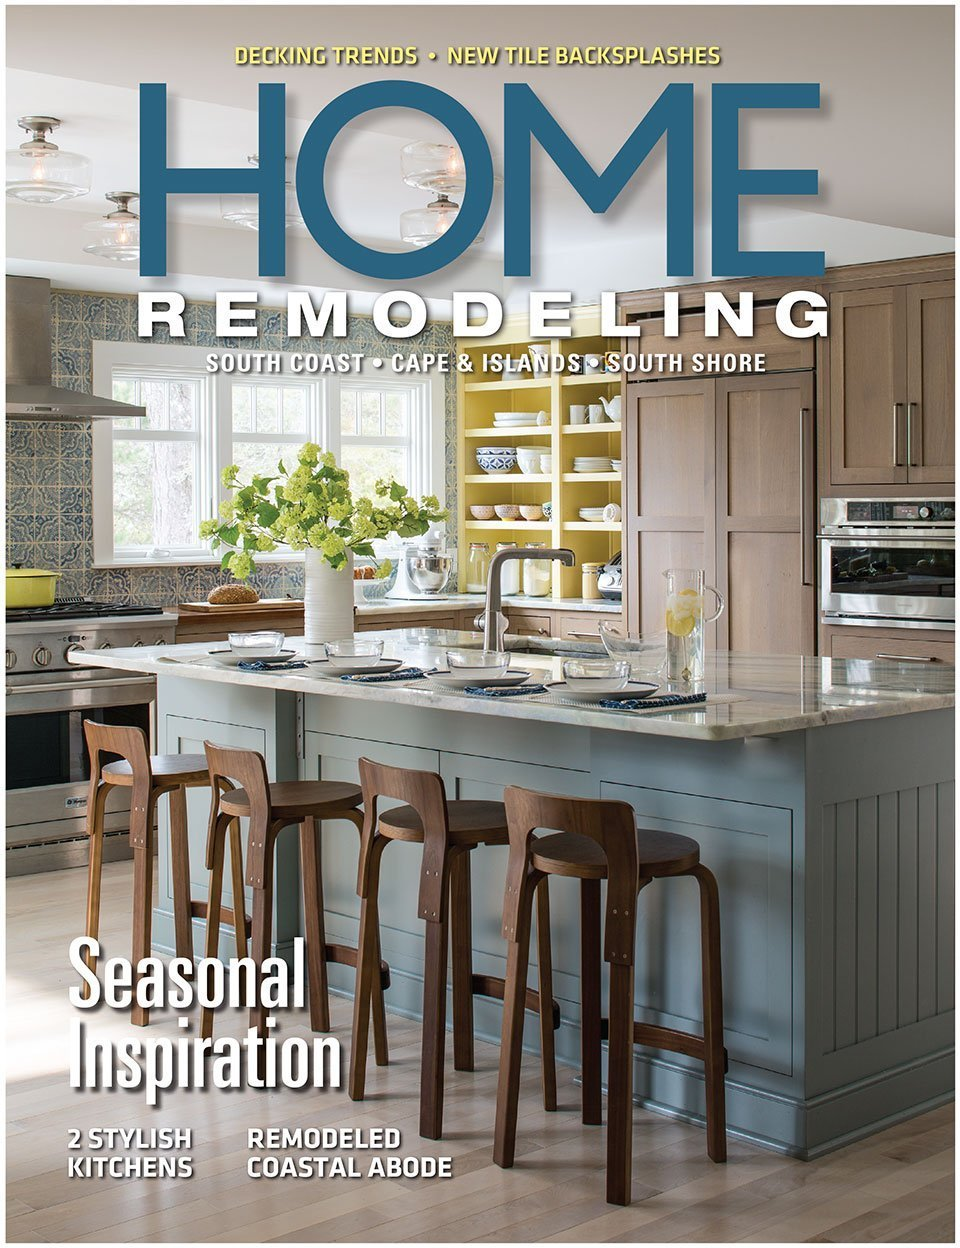 2017 Home Remodeling magazine cover